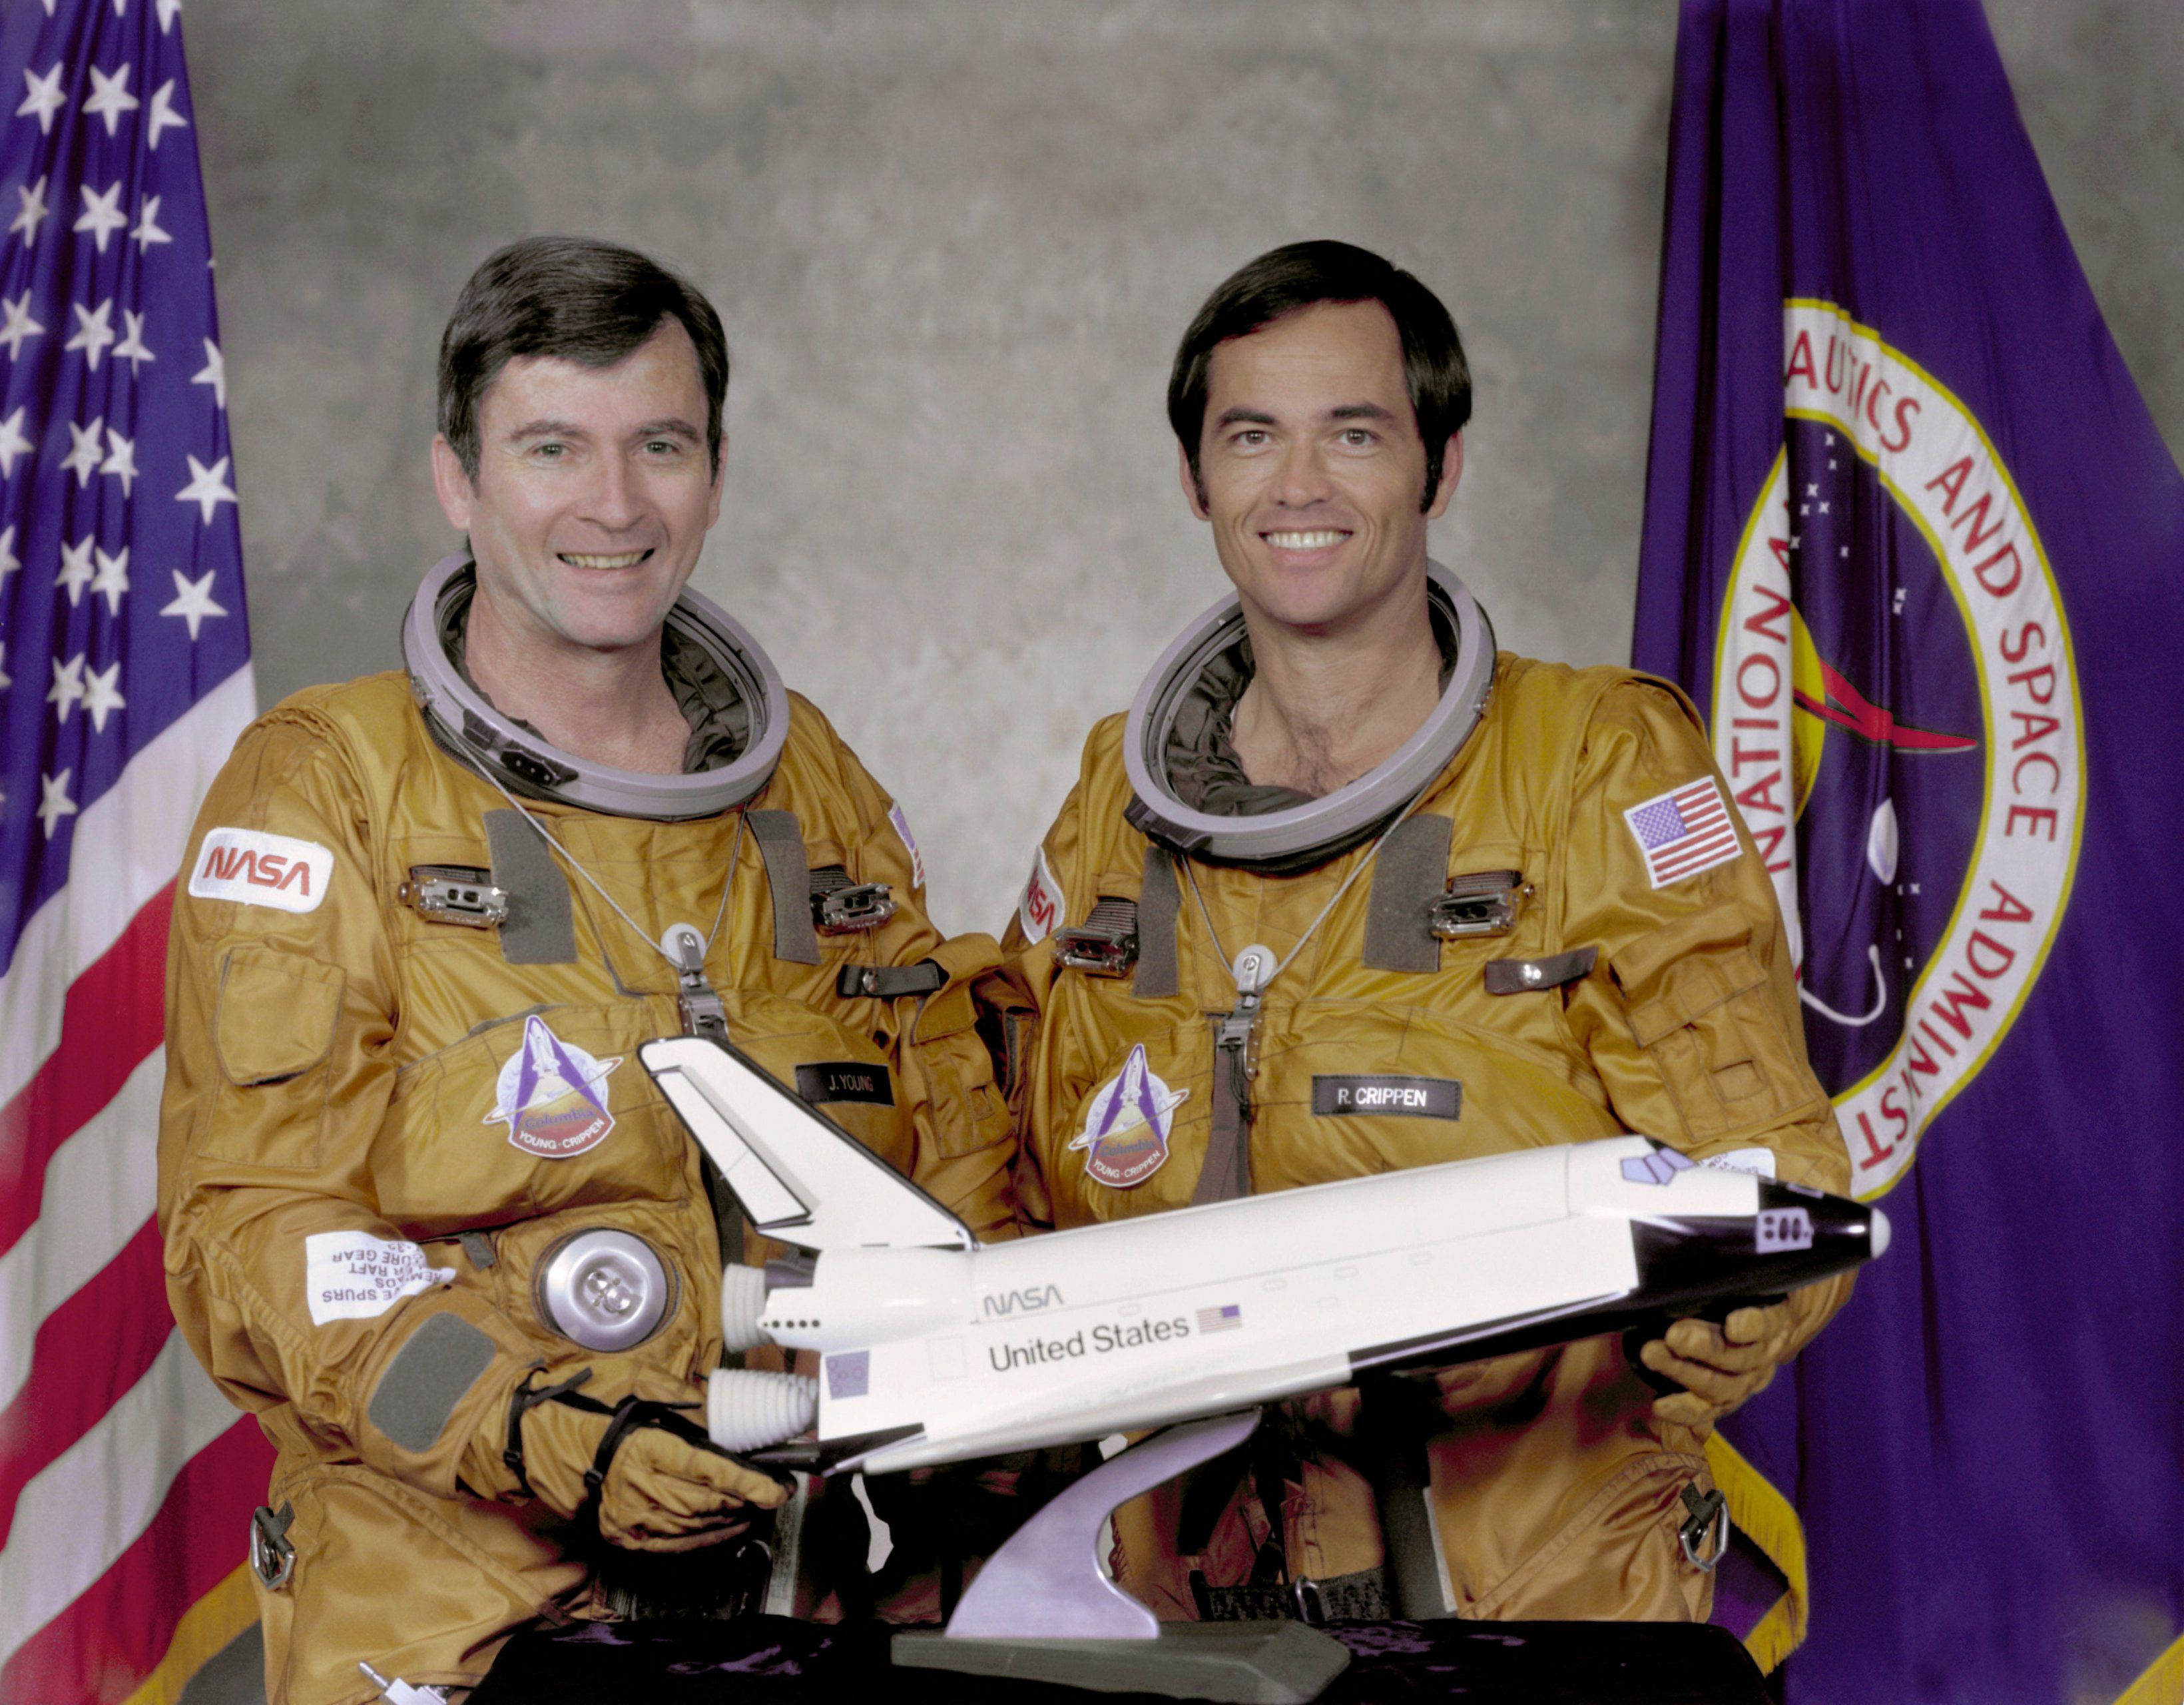 STS-1 crew members Commander John Young (L) and Pilot Robert Crippen pose with a model of the Space Shuttle Columbia at Johnson Space Center in Houston May, 7, 1979. Young and Crippen flew the first orbital mission of NASA's space shuttle program aboard the Columbia.  REUTERS/NASA/Handout  (UNITED STATES - Tags: SCI TECH) FOR EDITORIAL USE ONLY. NOT FOR SALE FOR MARKETING OR ADVERTISING CAMPAIGNS. THIS IMAGE HAS BEEN SUPPLIED BY A THIRD PARTY. IT IS DISTRIBUTED, EXACTLY AS RECEIVED BY REUTERS, AS A SERVICE TO CLIENTS